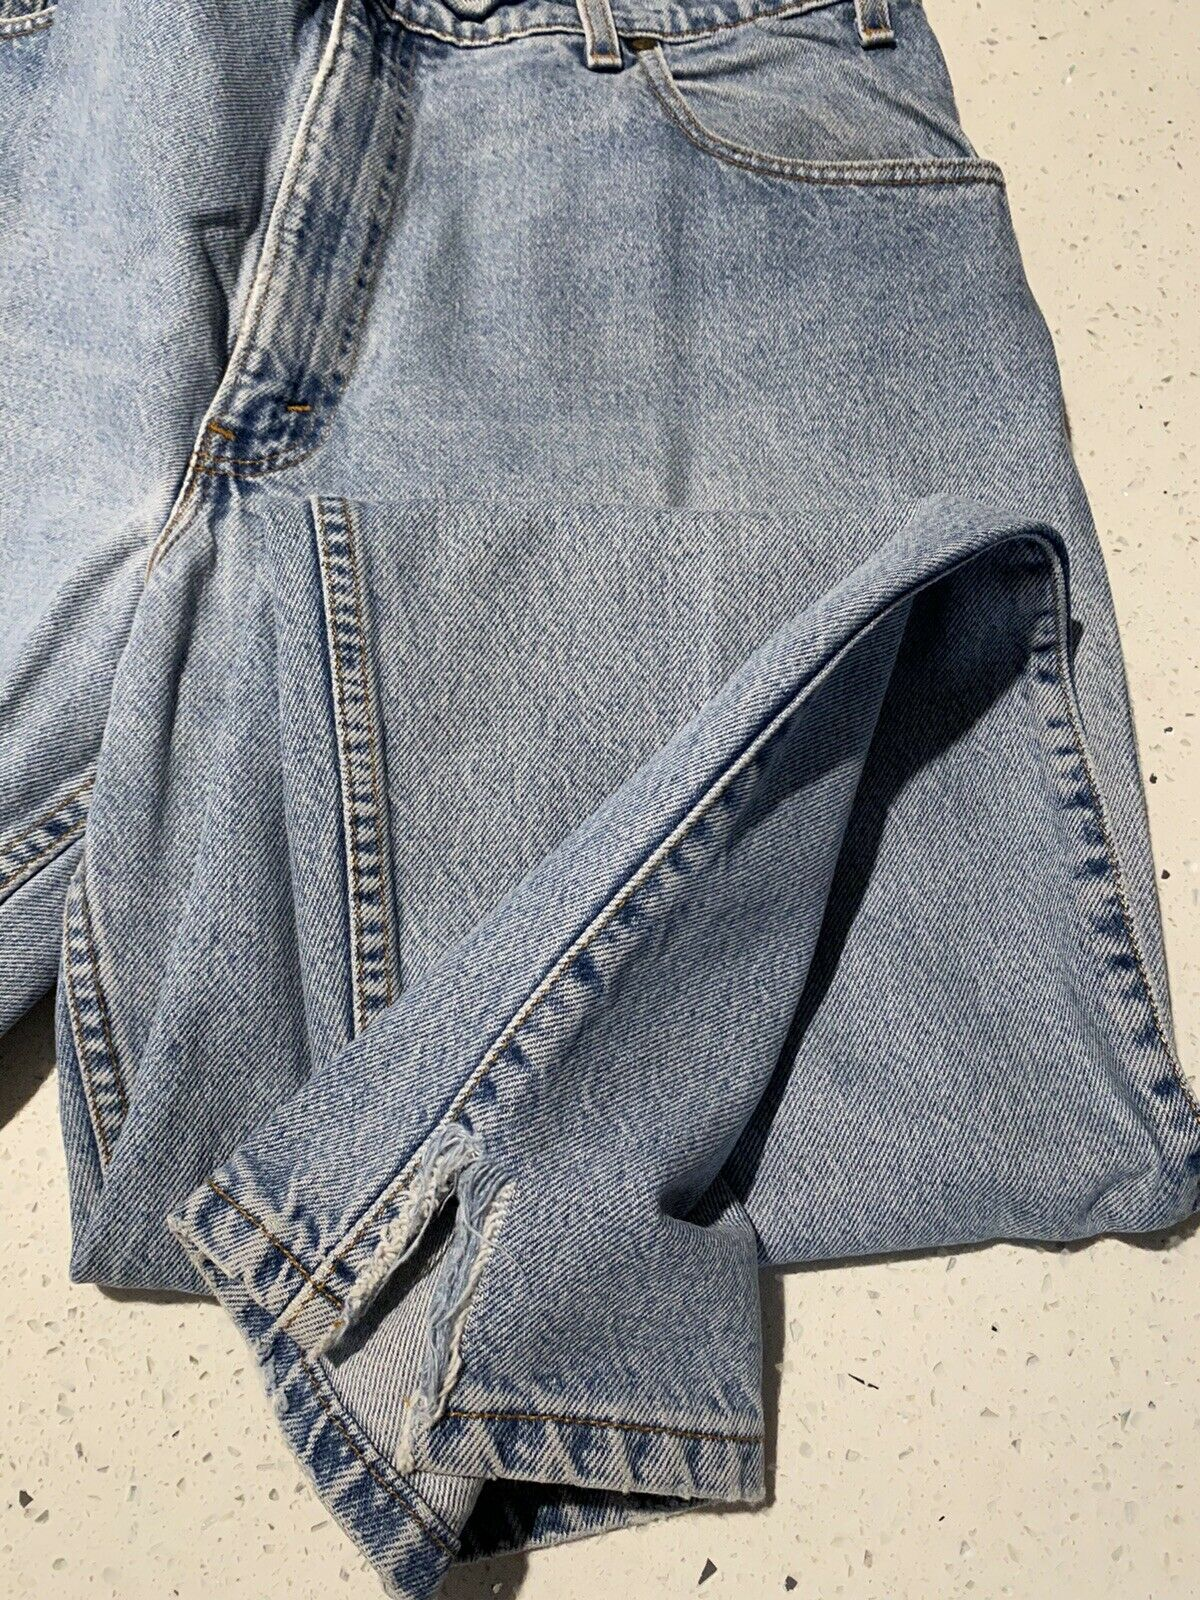 Vintage Levis (Brown Tab) Made In USA - image 11